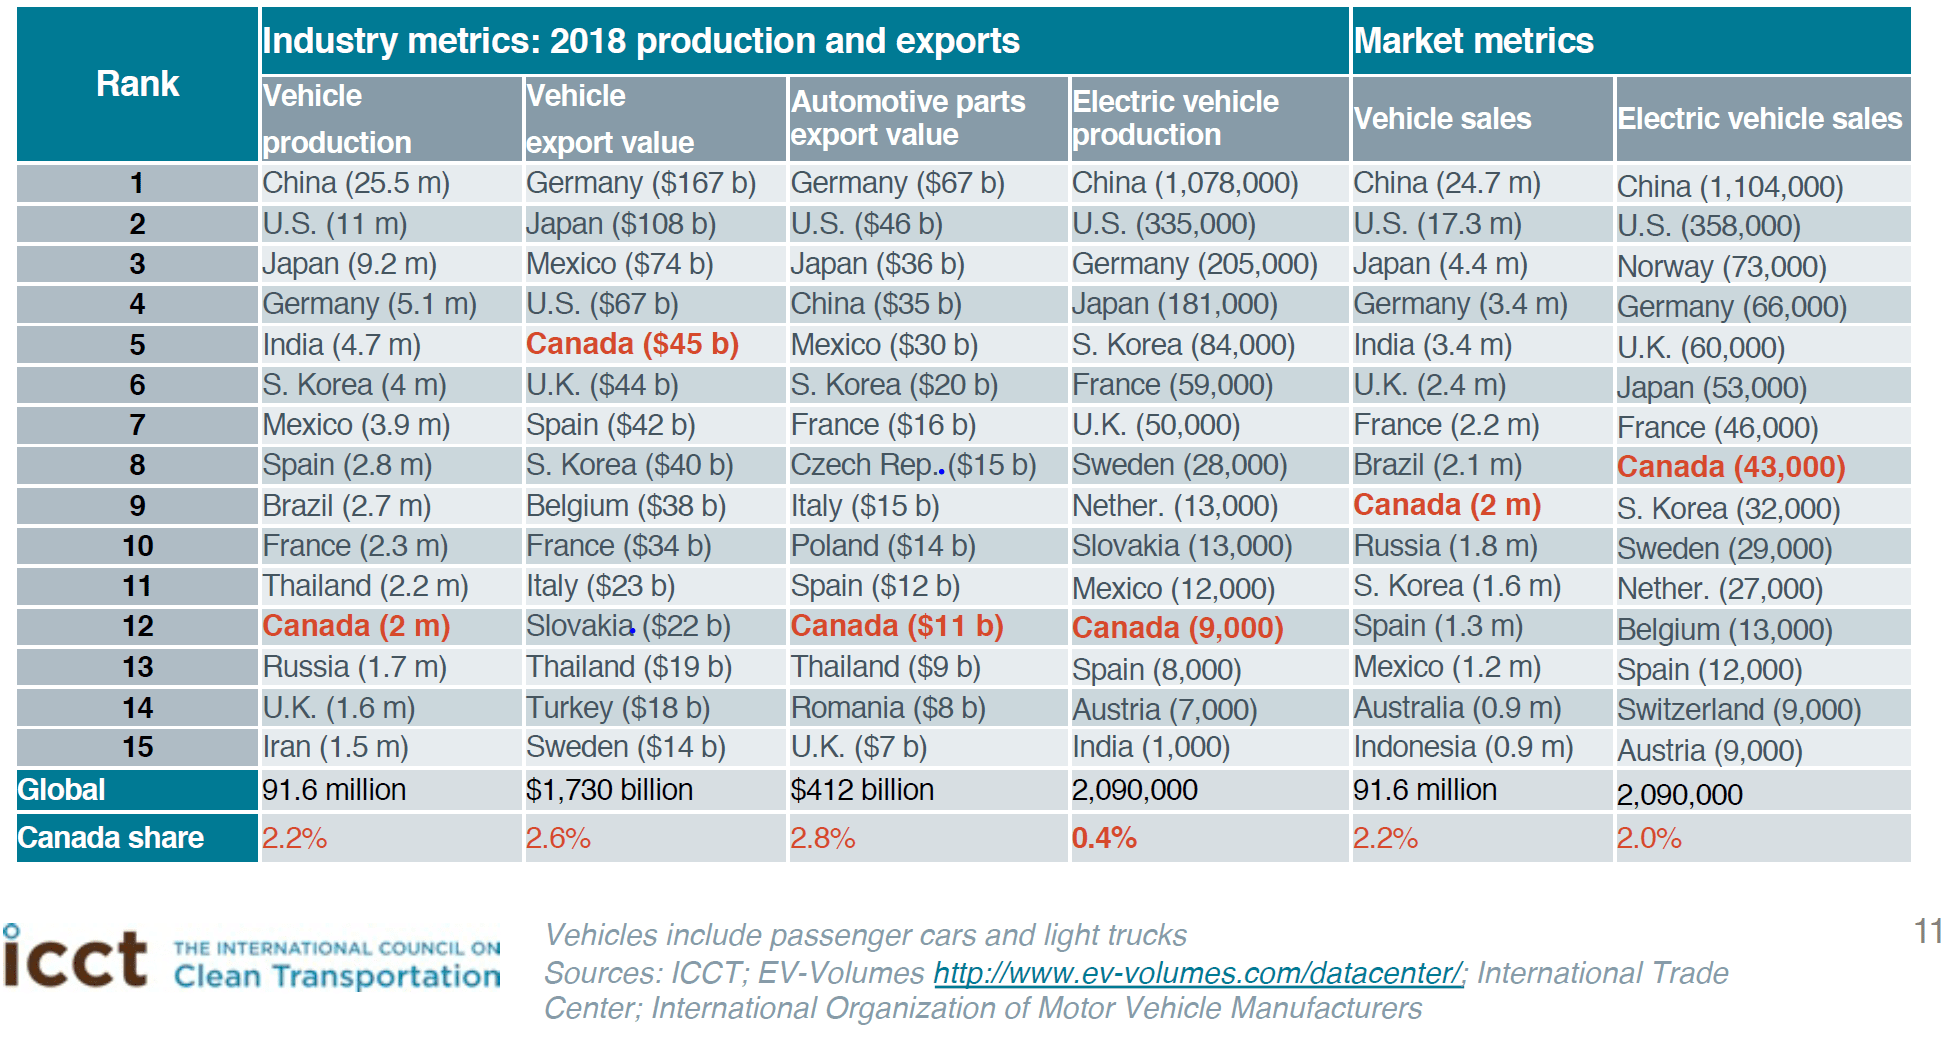 Industry Metrics 2018 production and exports